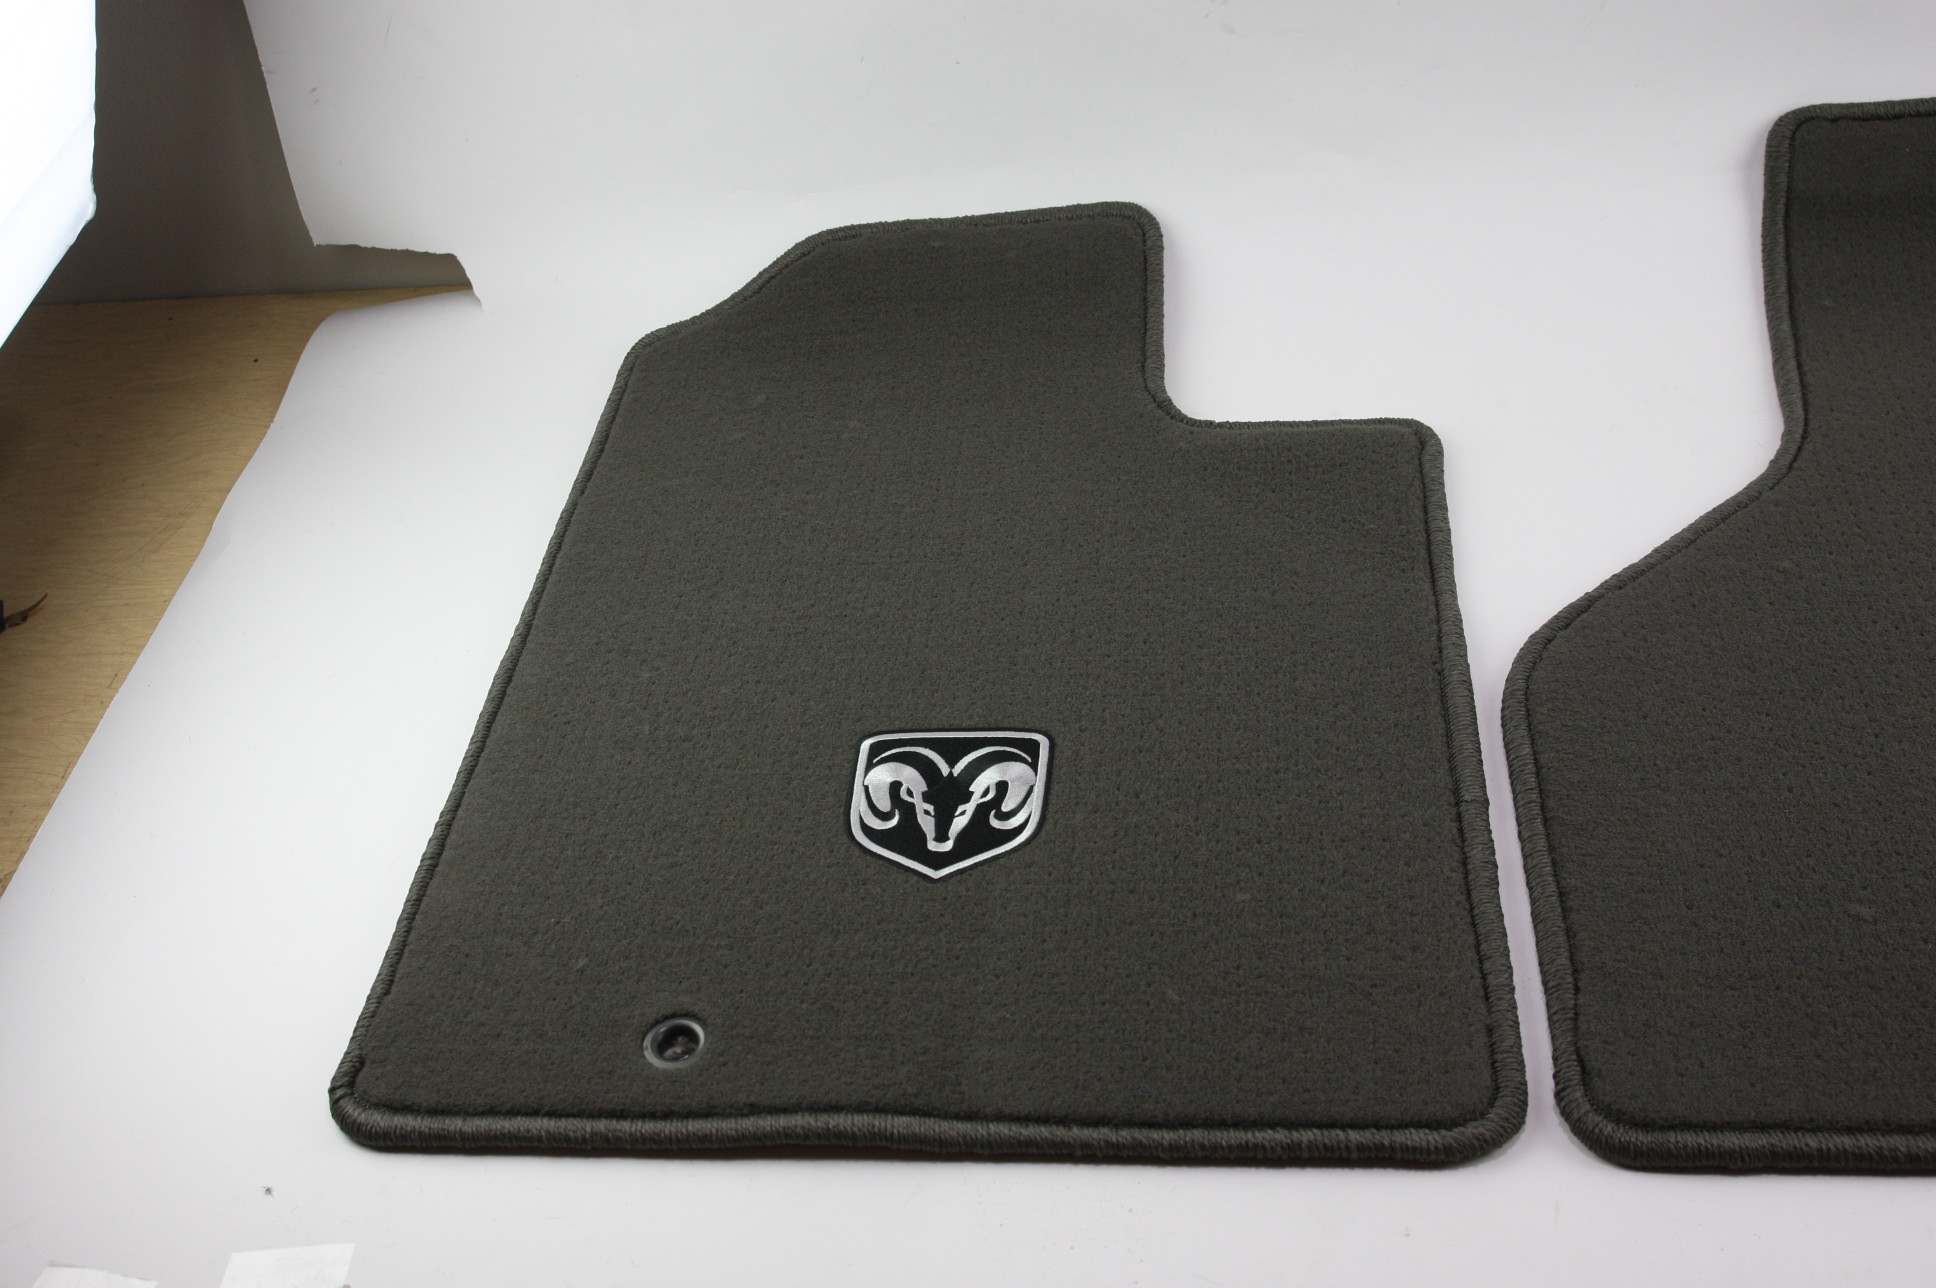 New OEM Mopar 82209560 06-08 Dodge Ram 1500 Front Carpeted Floor Mats Dark Khaki - image 2